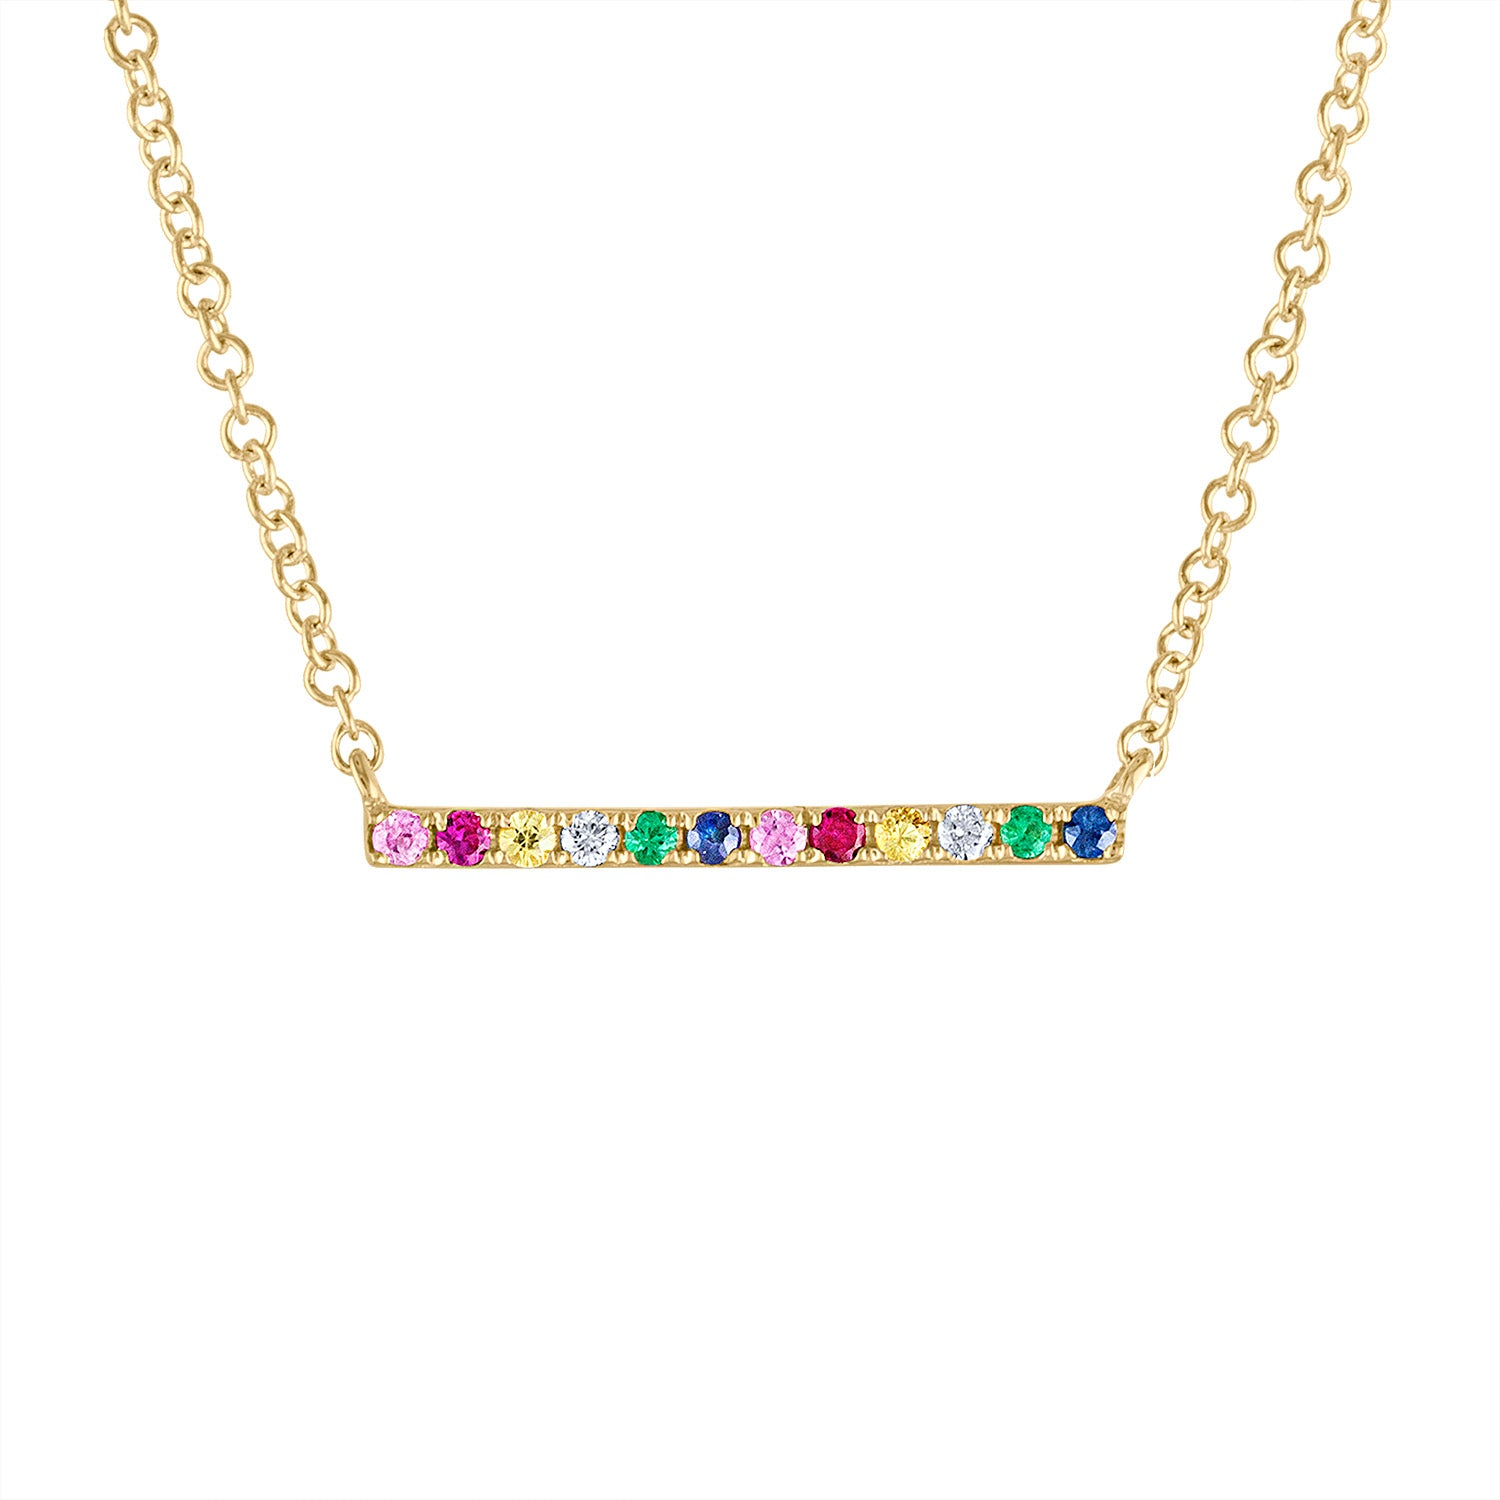 14k Yellow Gold precious stone bar necklace